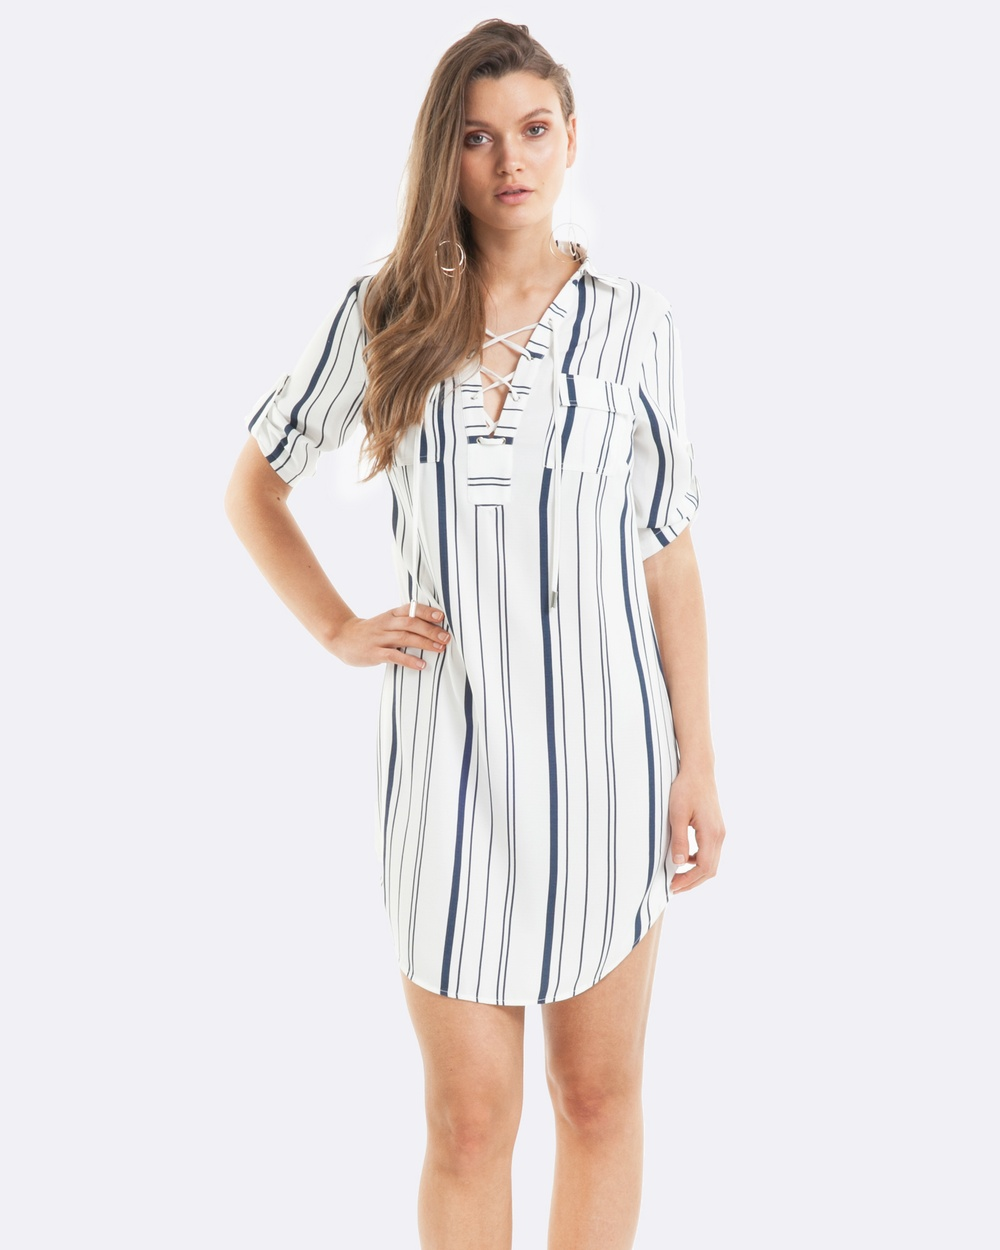 Amelius Alexis Shirt Dress Dresses Multi Alexis Shirt Dress